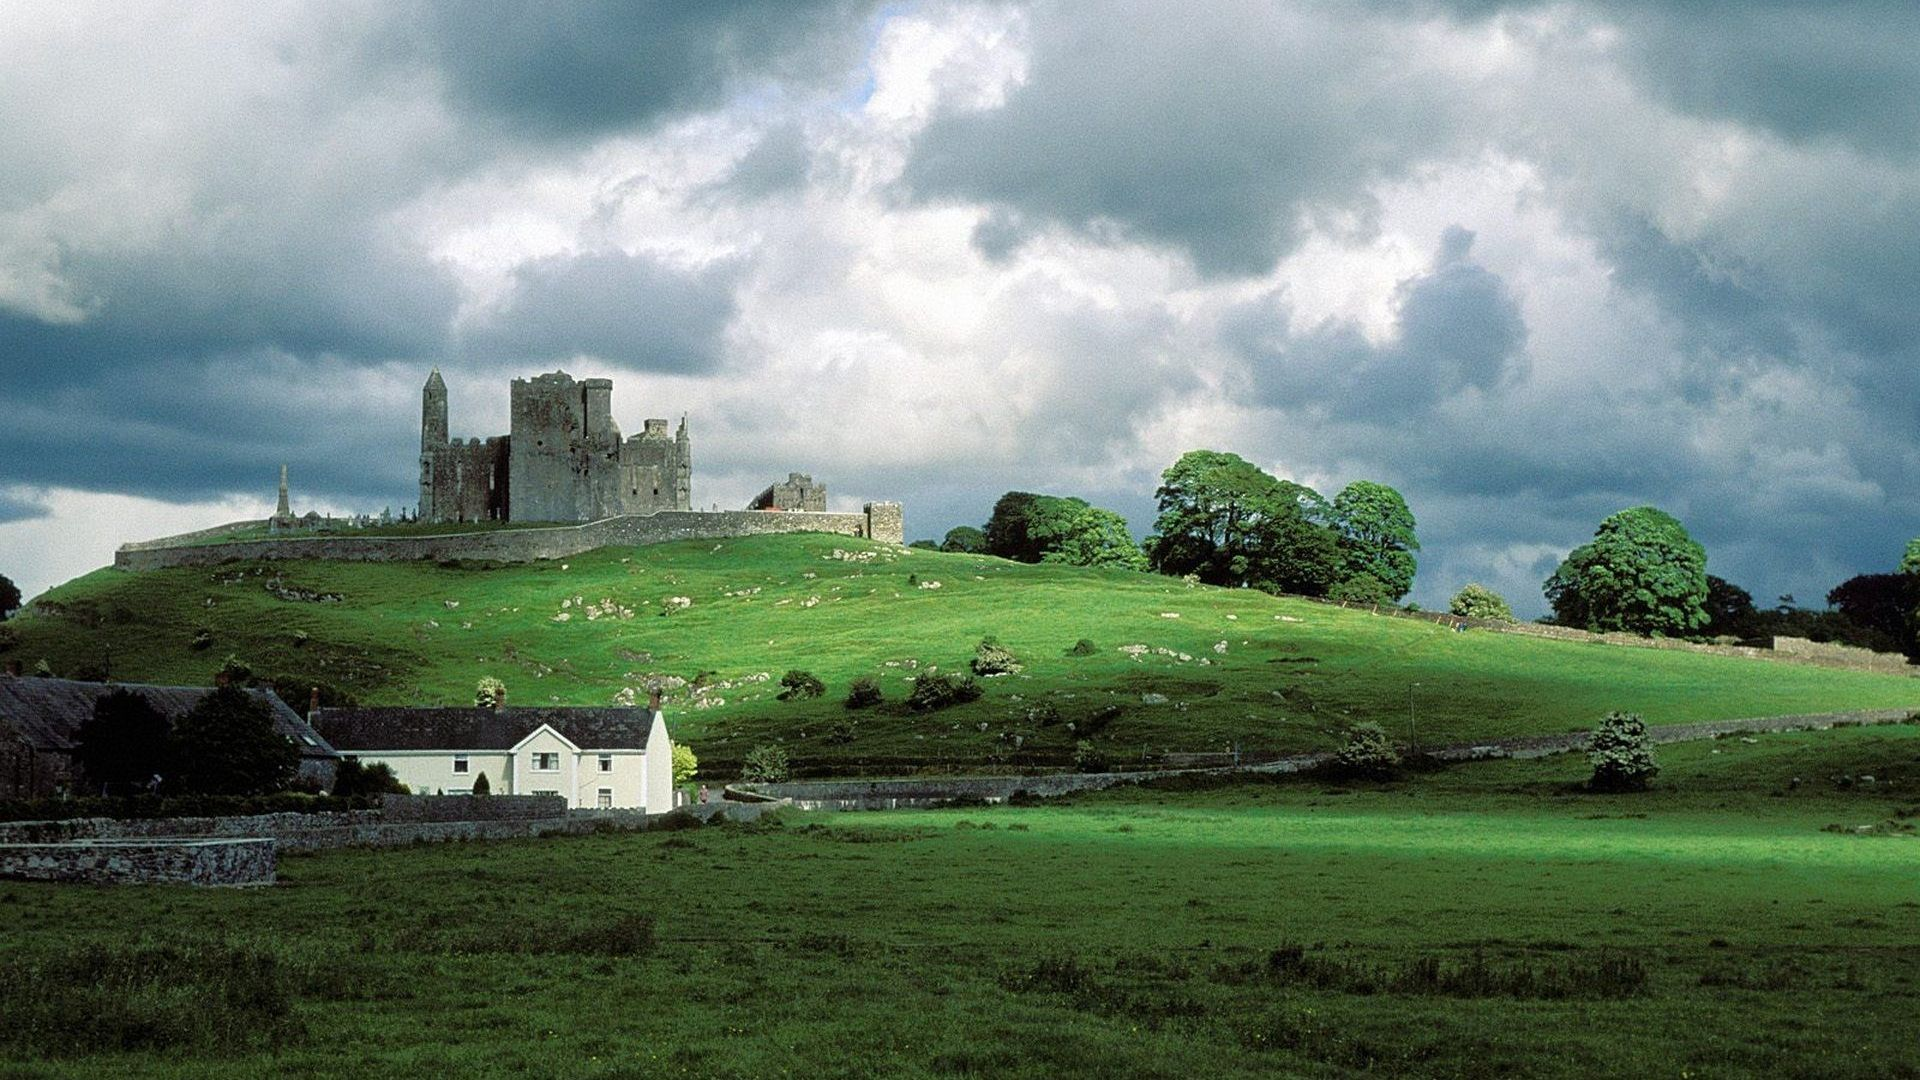 rock of cashel ireland wallpaper you are viewing the places wallpaper 1920x1080